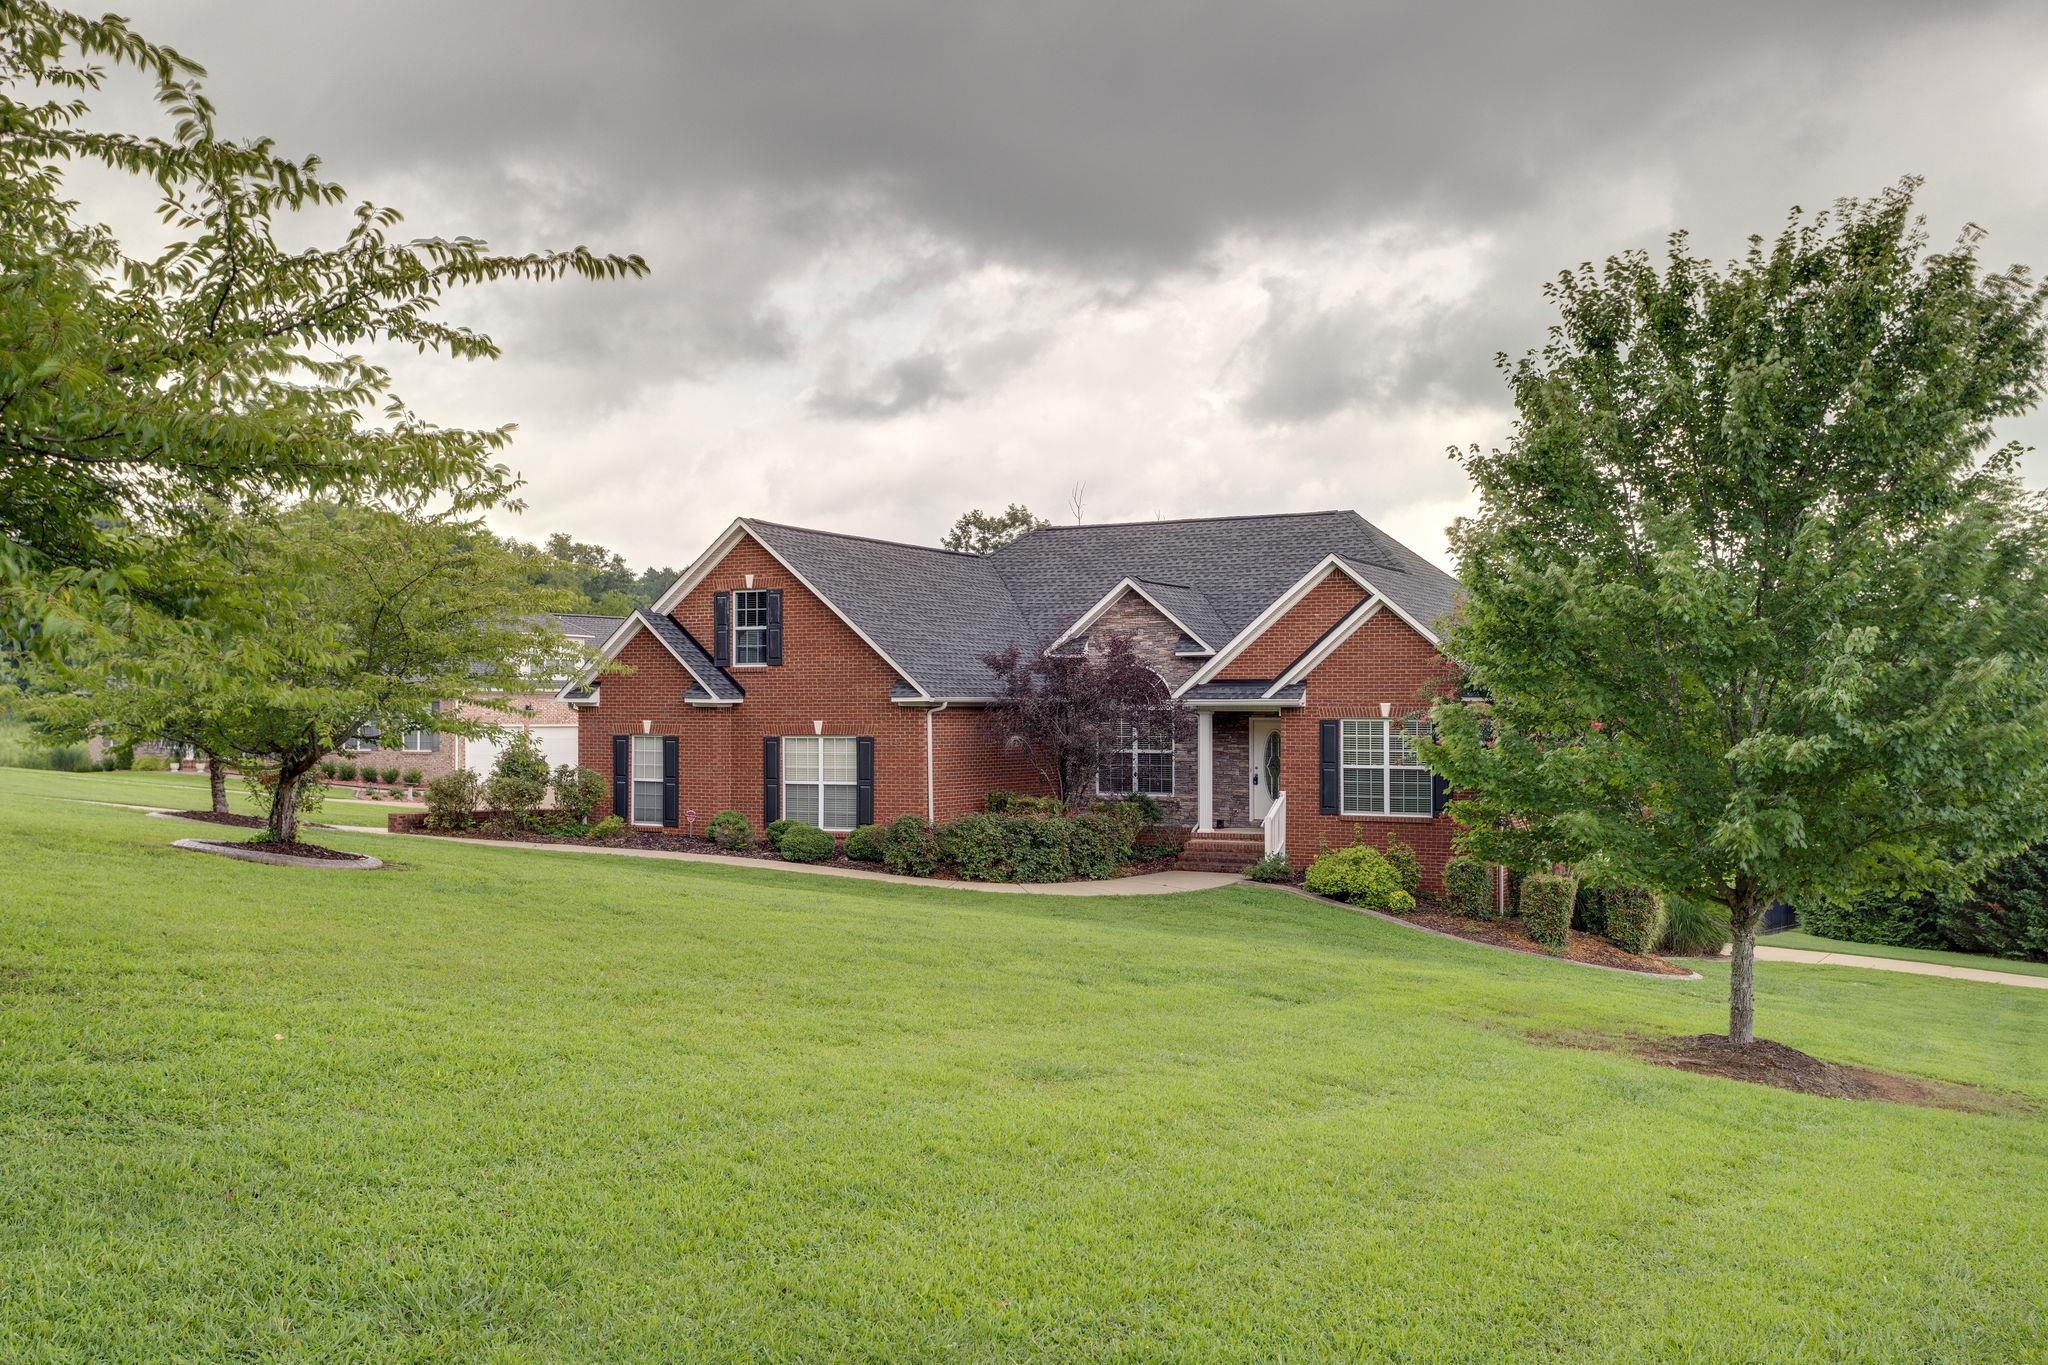 1195 Cliff White Rd, Columbia, TN 38401 - Columbia, TN real estate listing